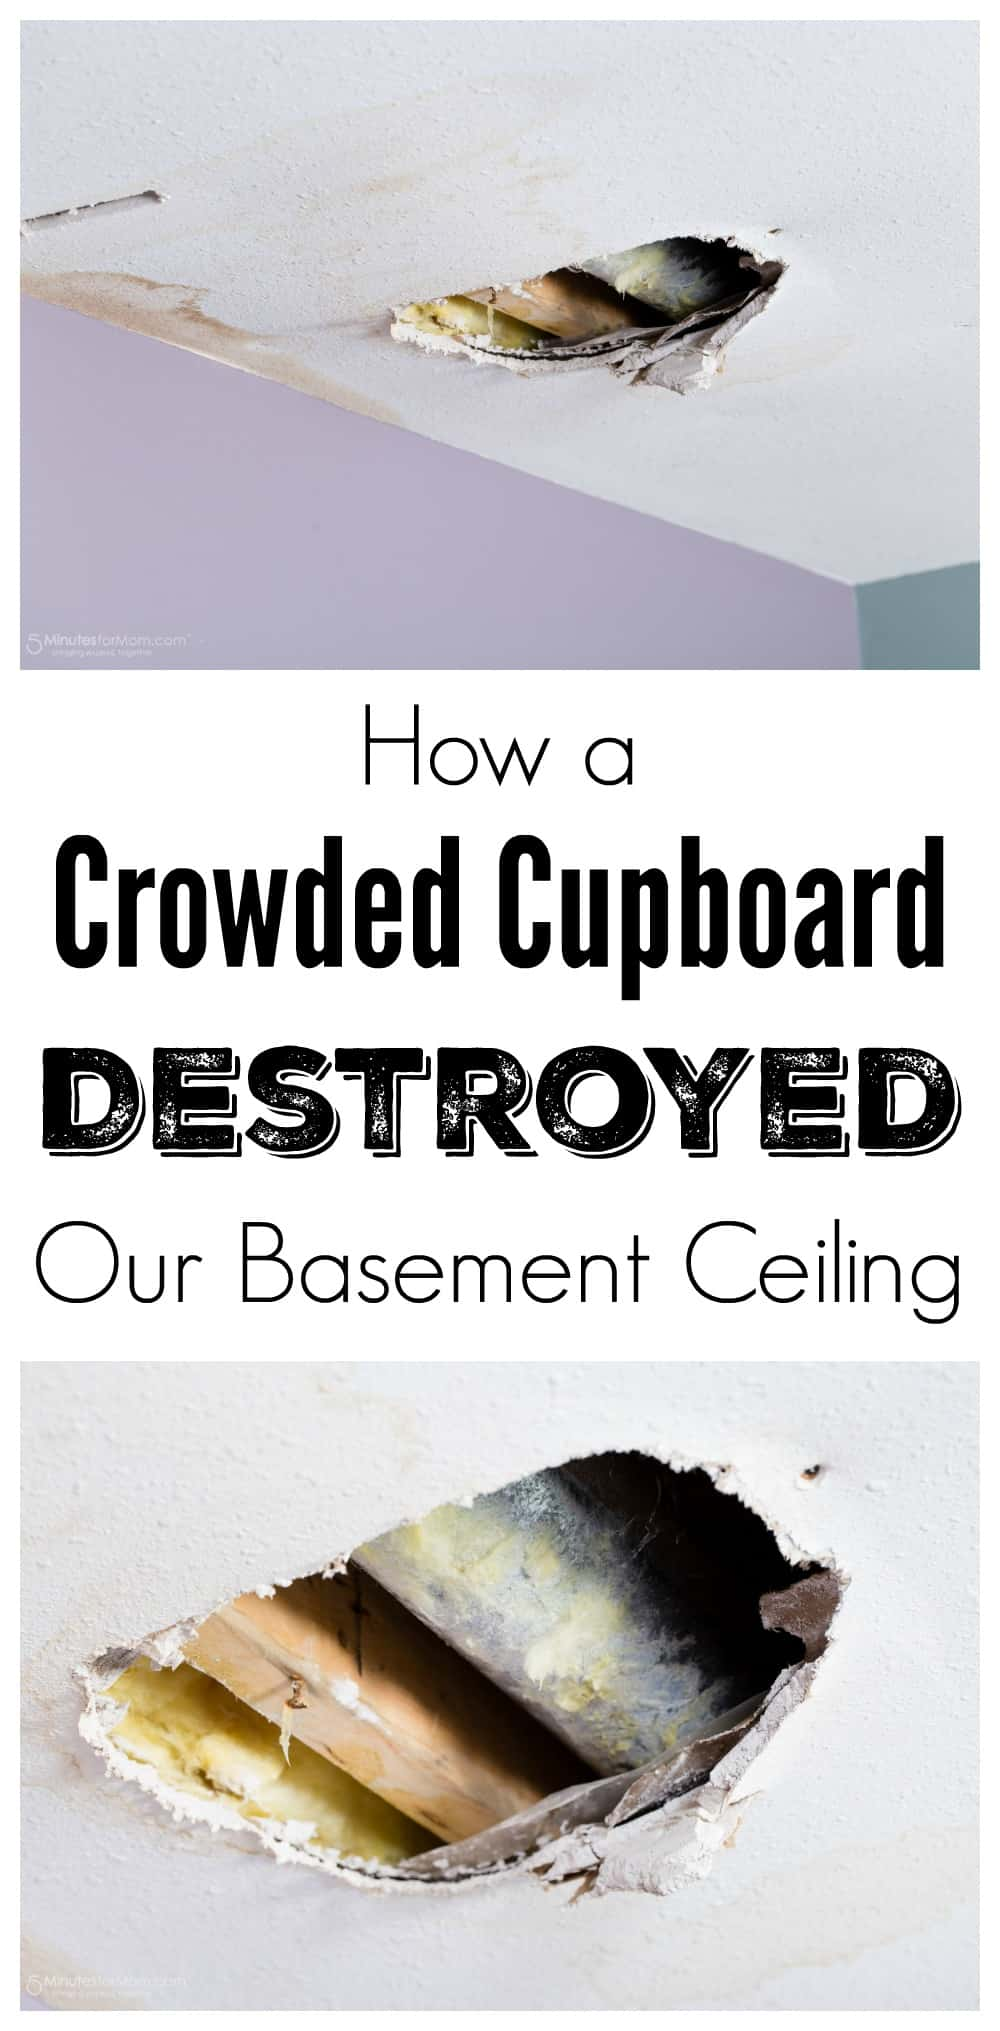 How a Crowded Cupboard Destroyed Our Basement Ceiling